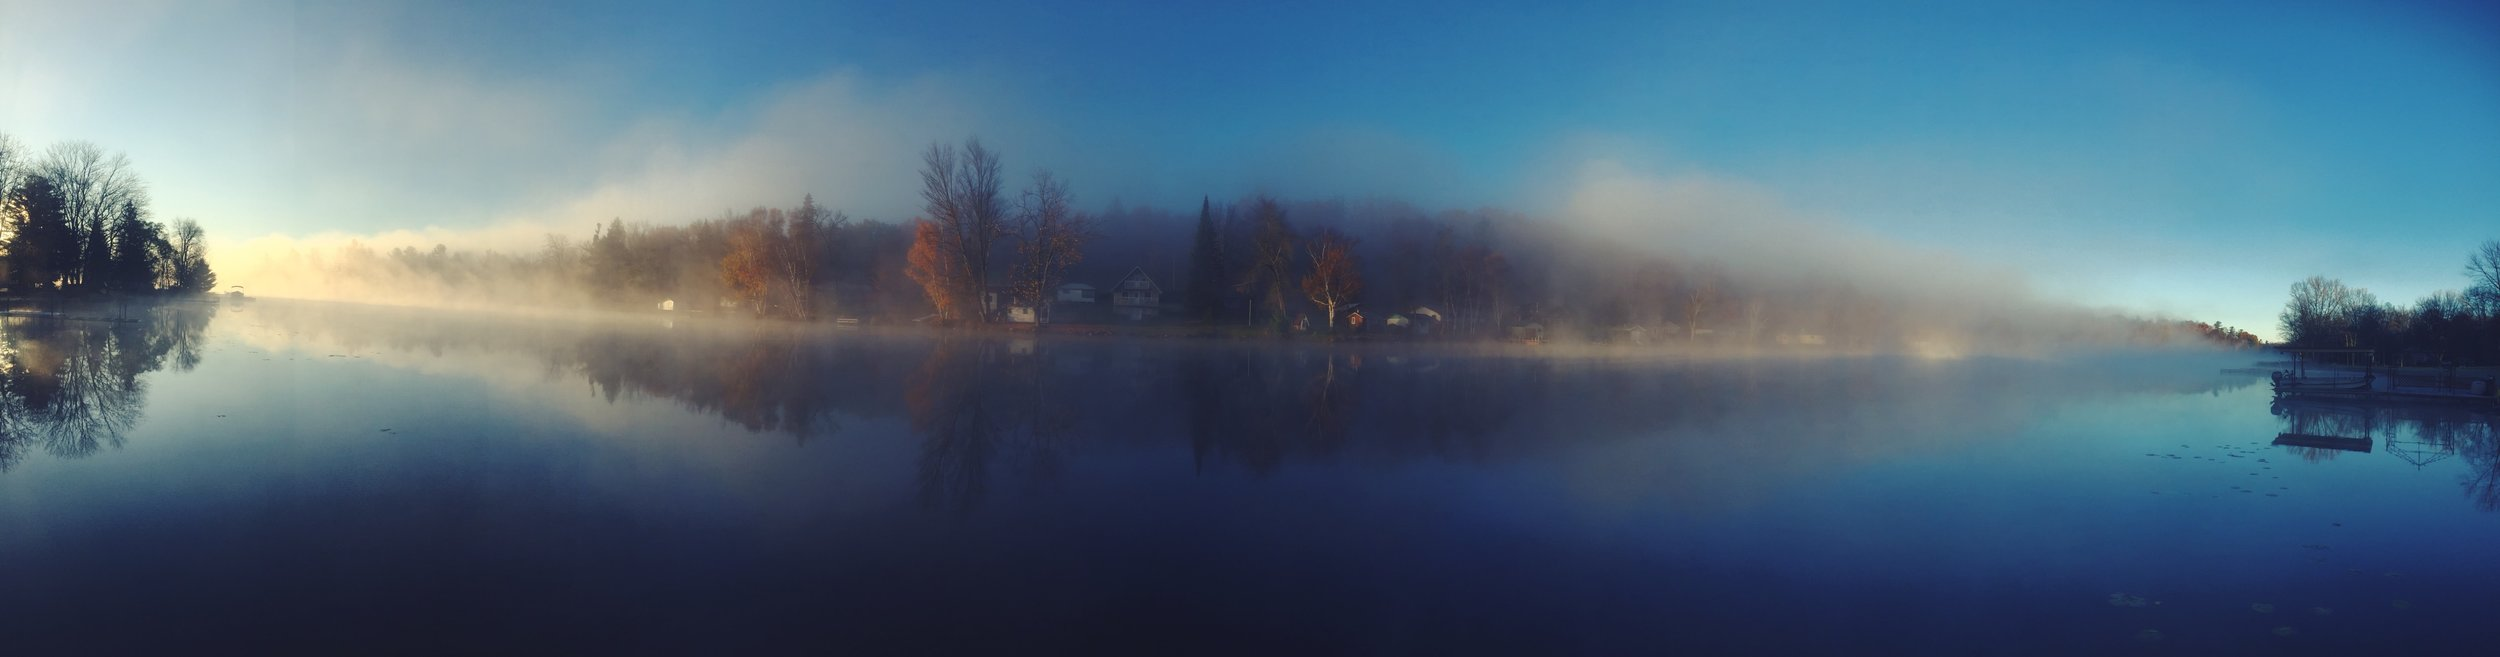 River panoramic_Morning mist.JPG